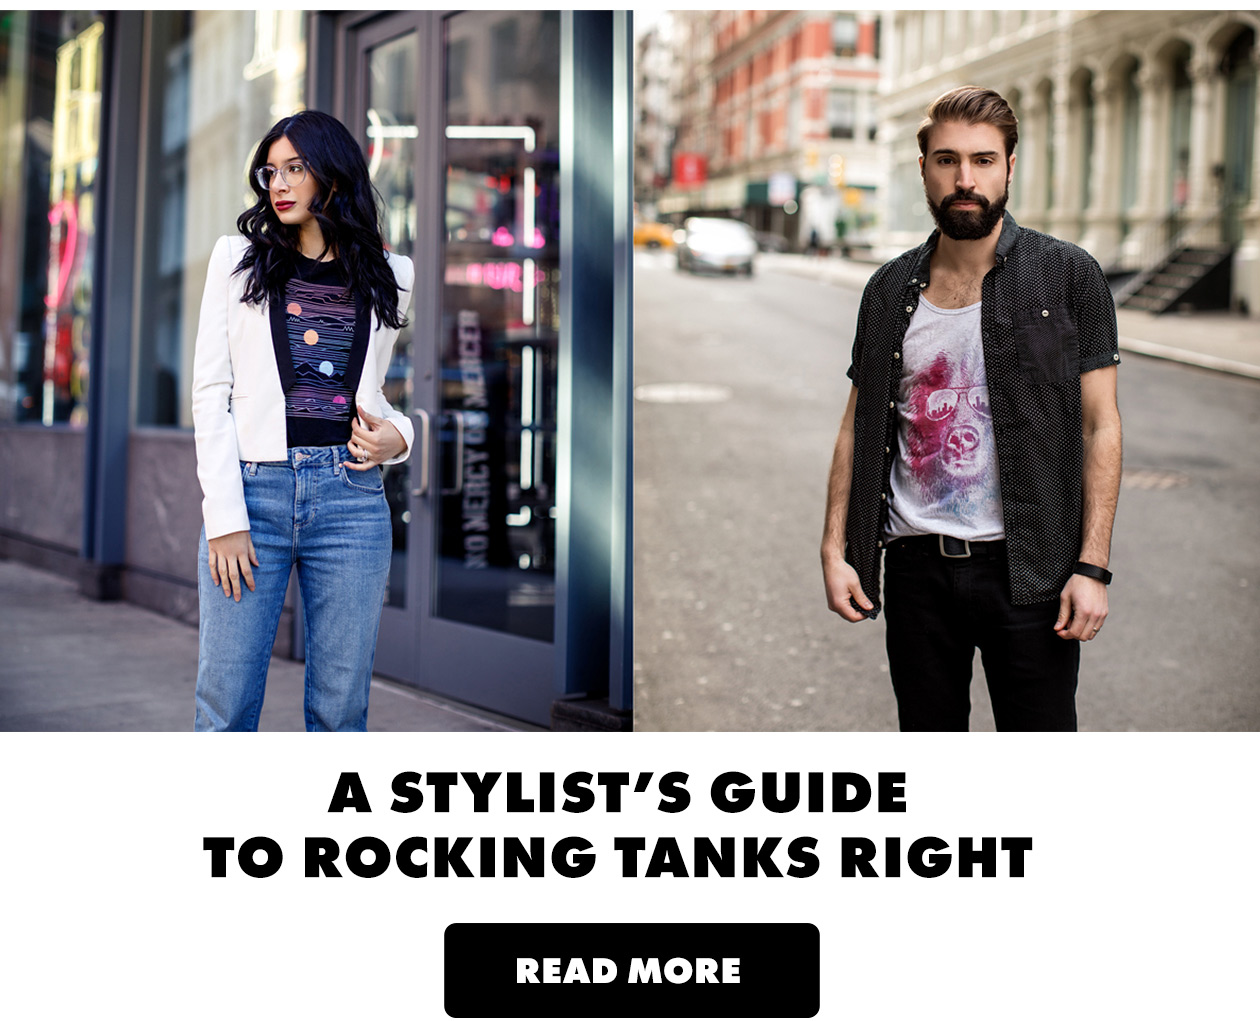 A Stylist's Guide to Rocking Tanks Right